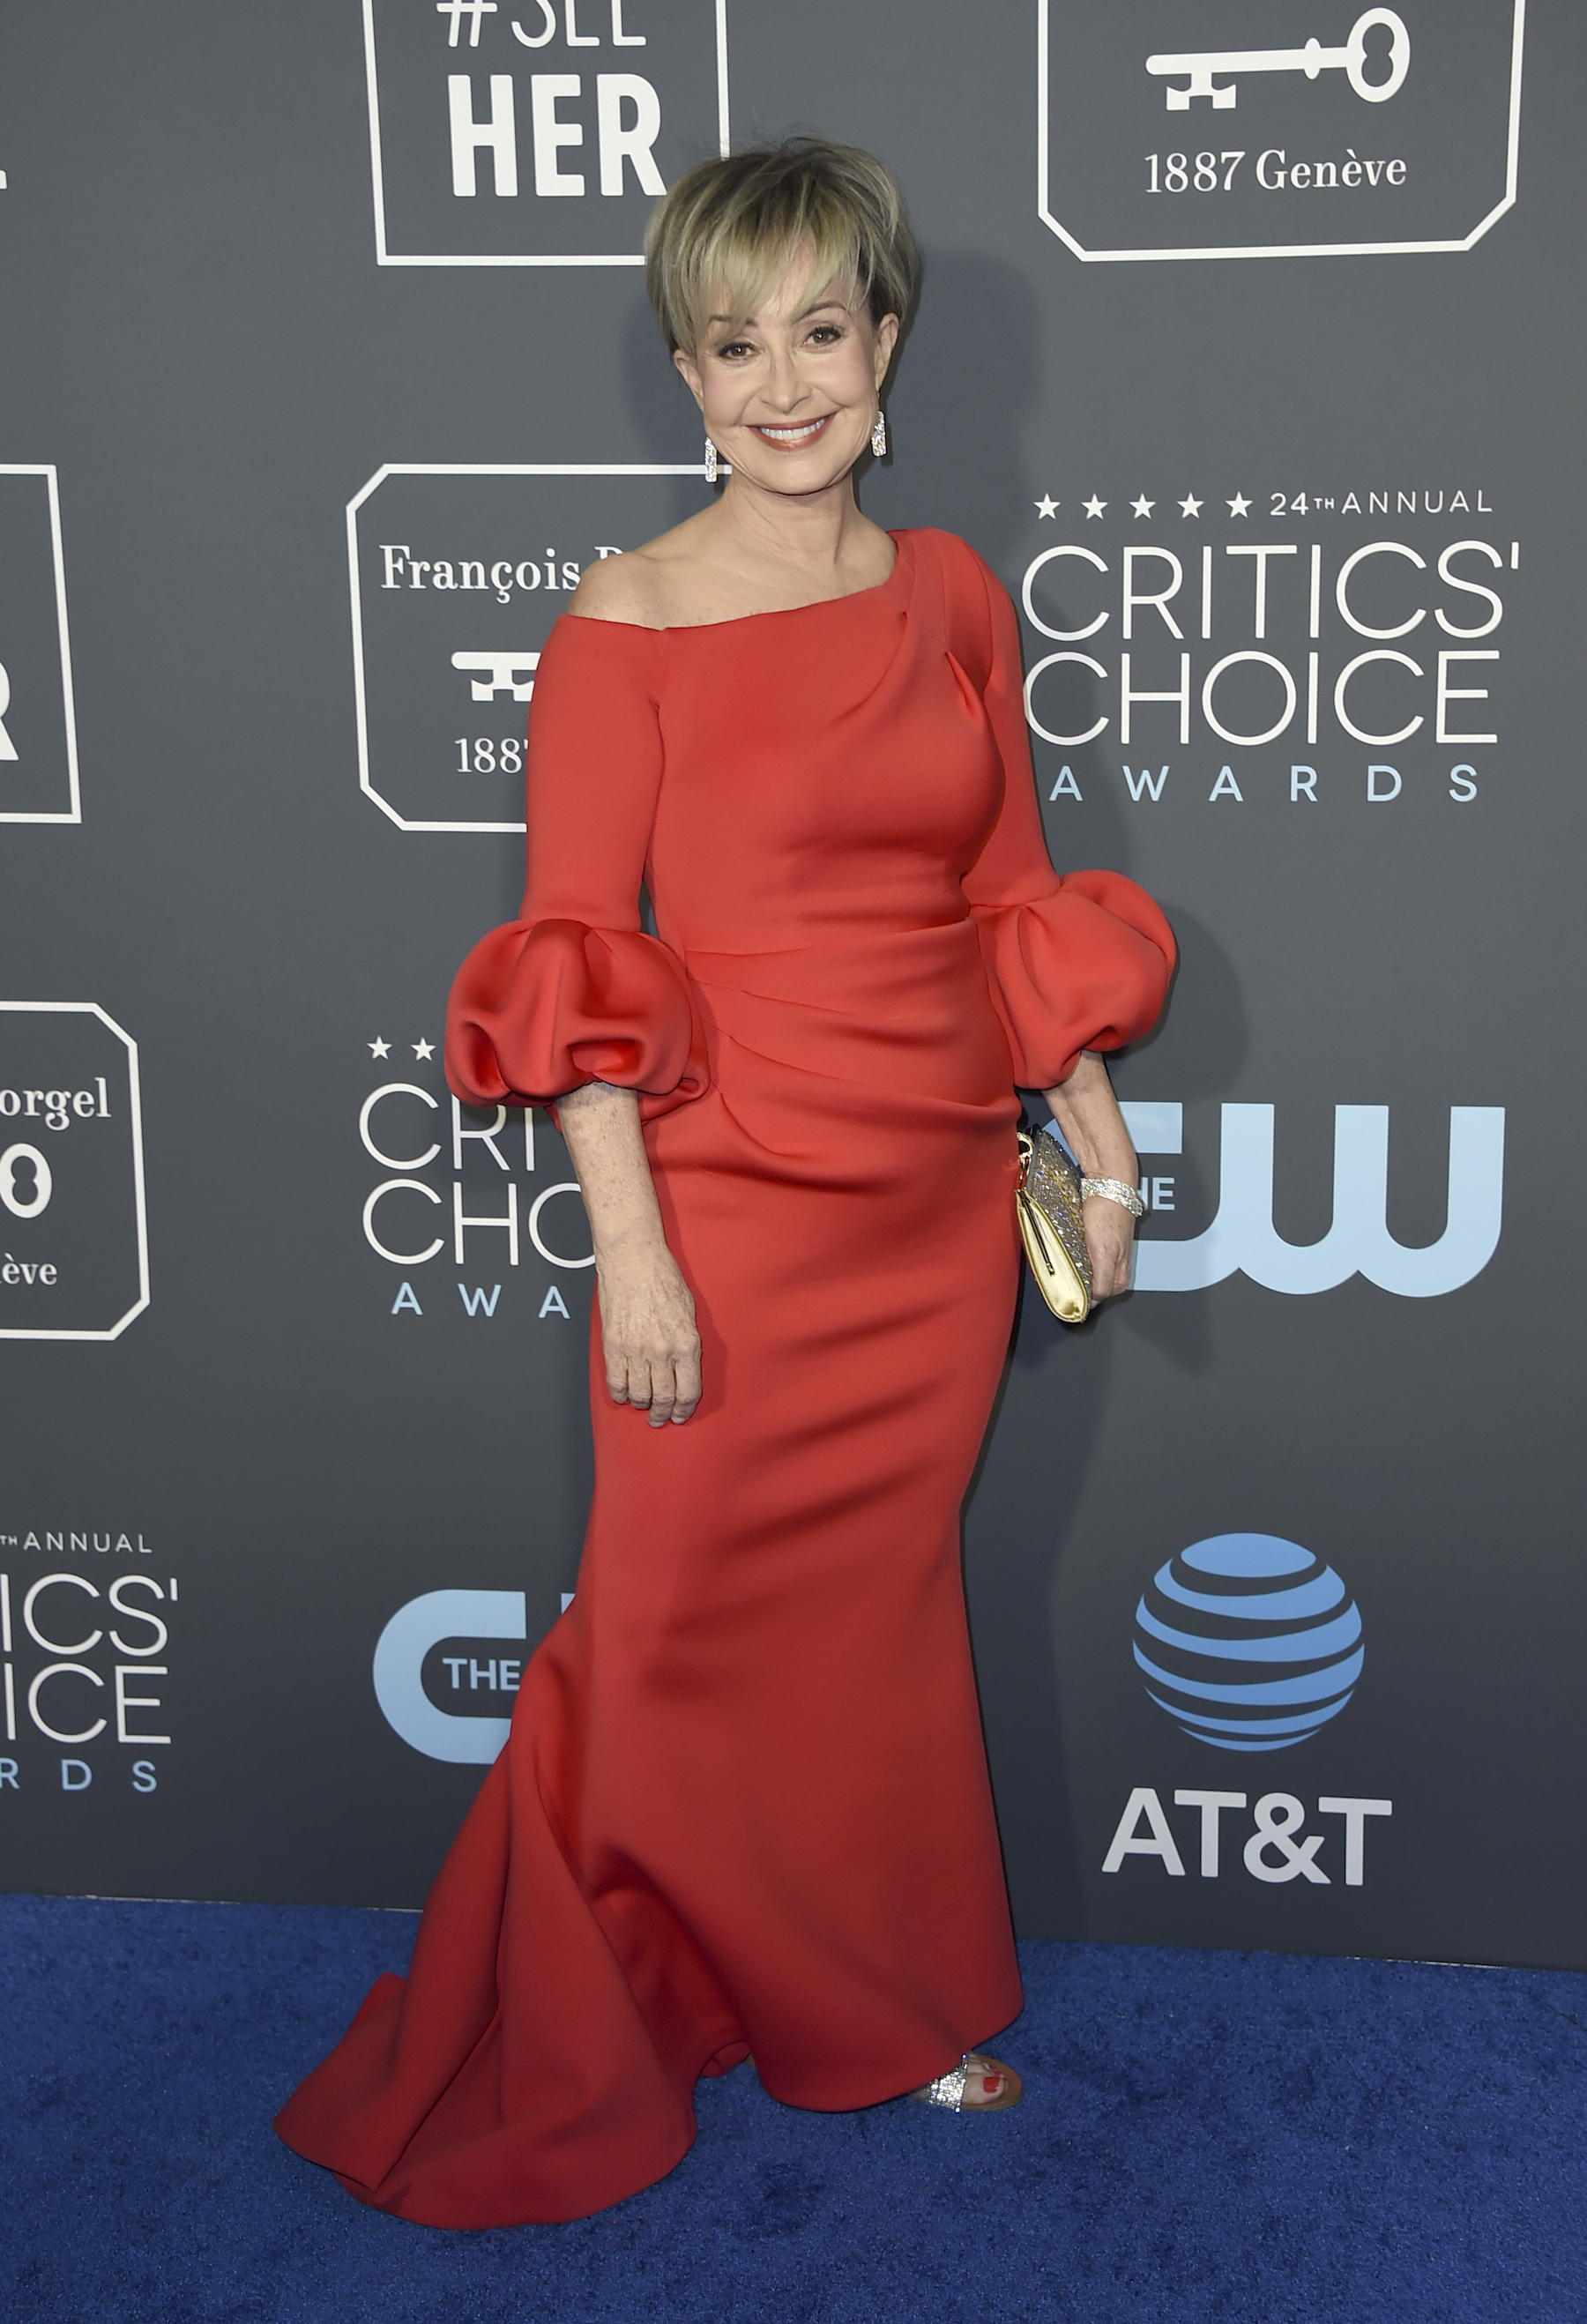 <div class='meta'><div class='origin-logo' data-origin='AP'></div><span class='caption-text' data-credit='Jordan Strauss/Invision/AP'>Annie Potts arrives at the 24th annual Critics' Choice Awards on Sunday, Jan. 13, 2019, at the Barker Hangar in Santa Monica, Calif.</span></div>